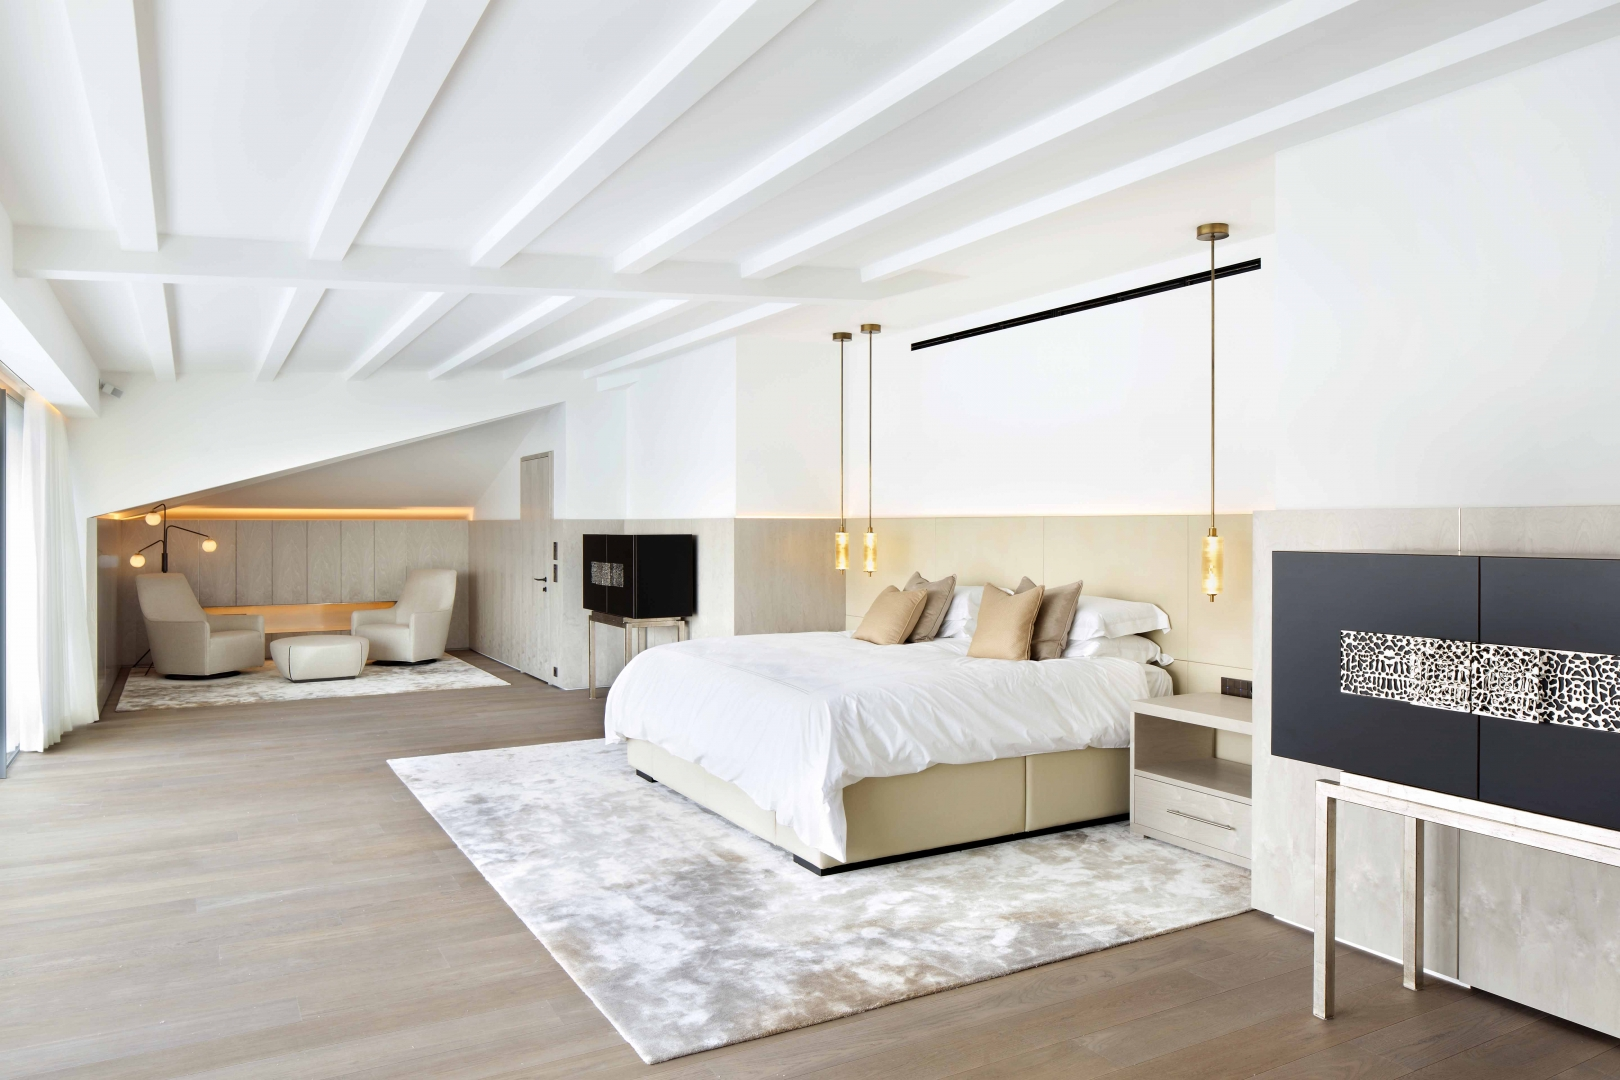 Bedroom Design Ideas And Colour Combos To Get Inspired By (1) bedroom design Bedroom Design Ideas And Colour Combos To Get Inspired By Bedroom Design Ideas And Colour Combos To Get Inspired By 1